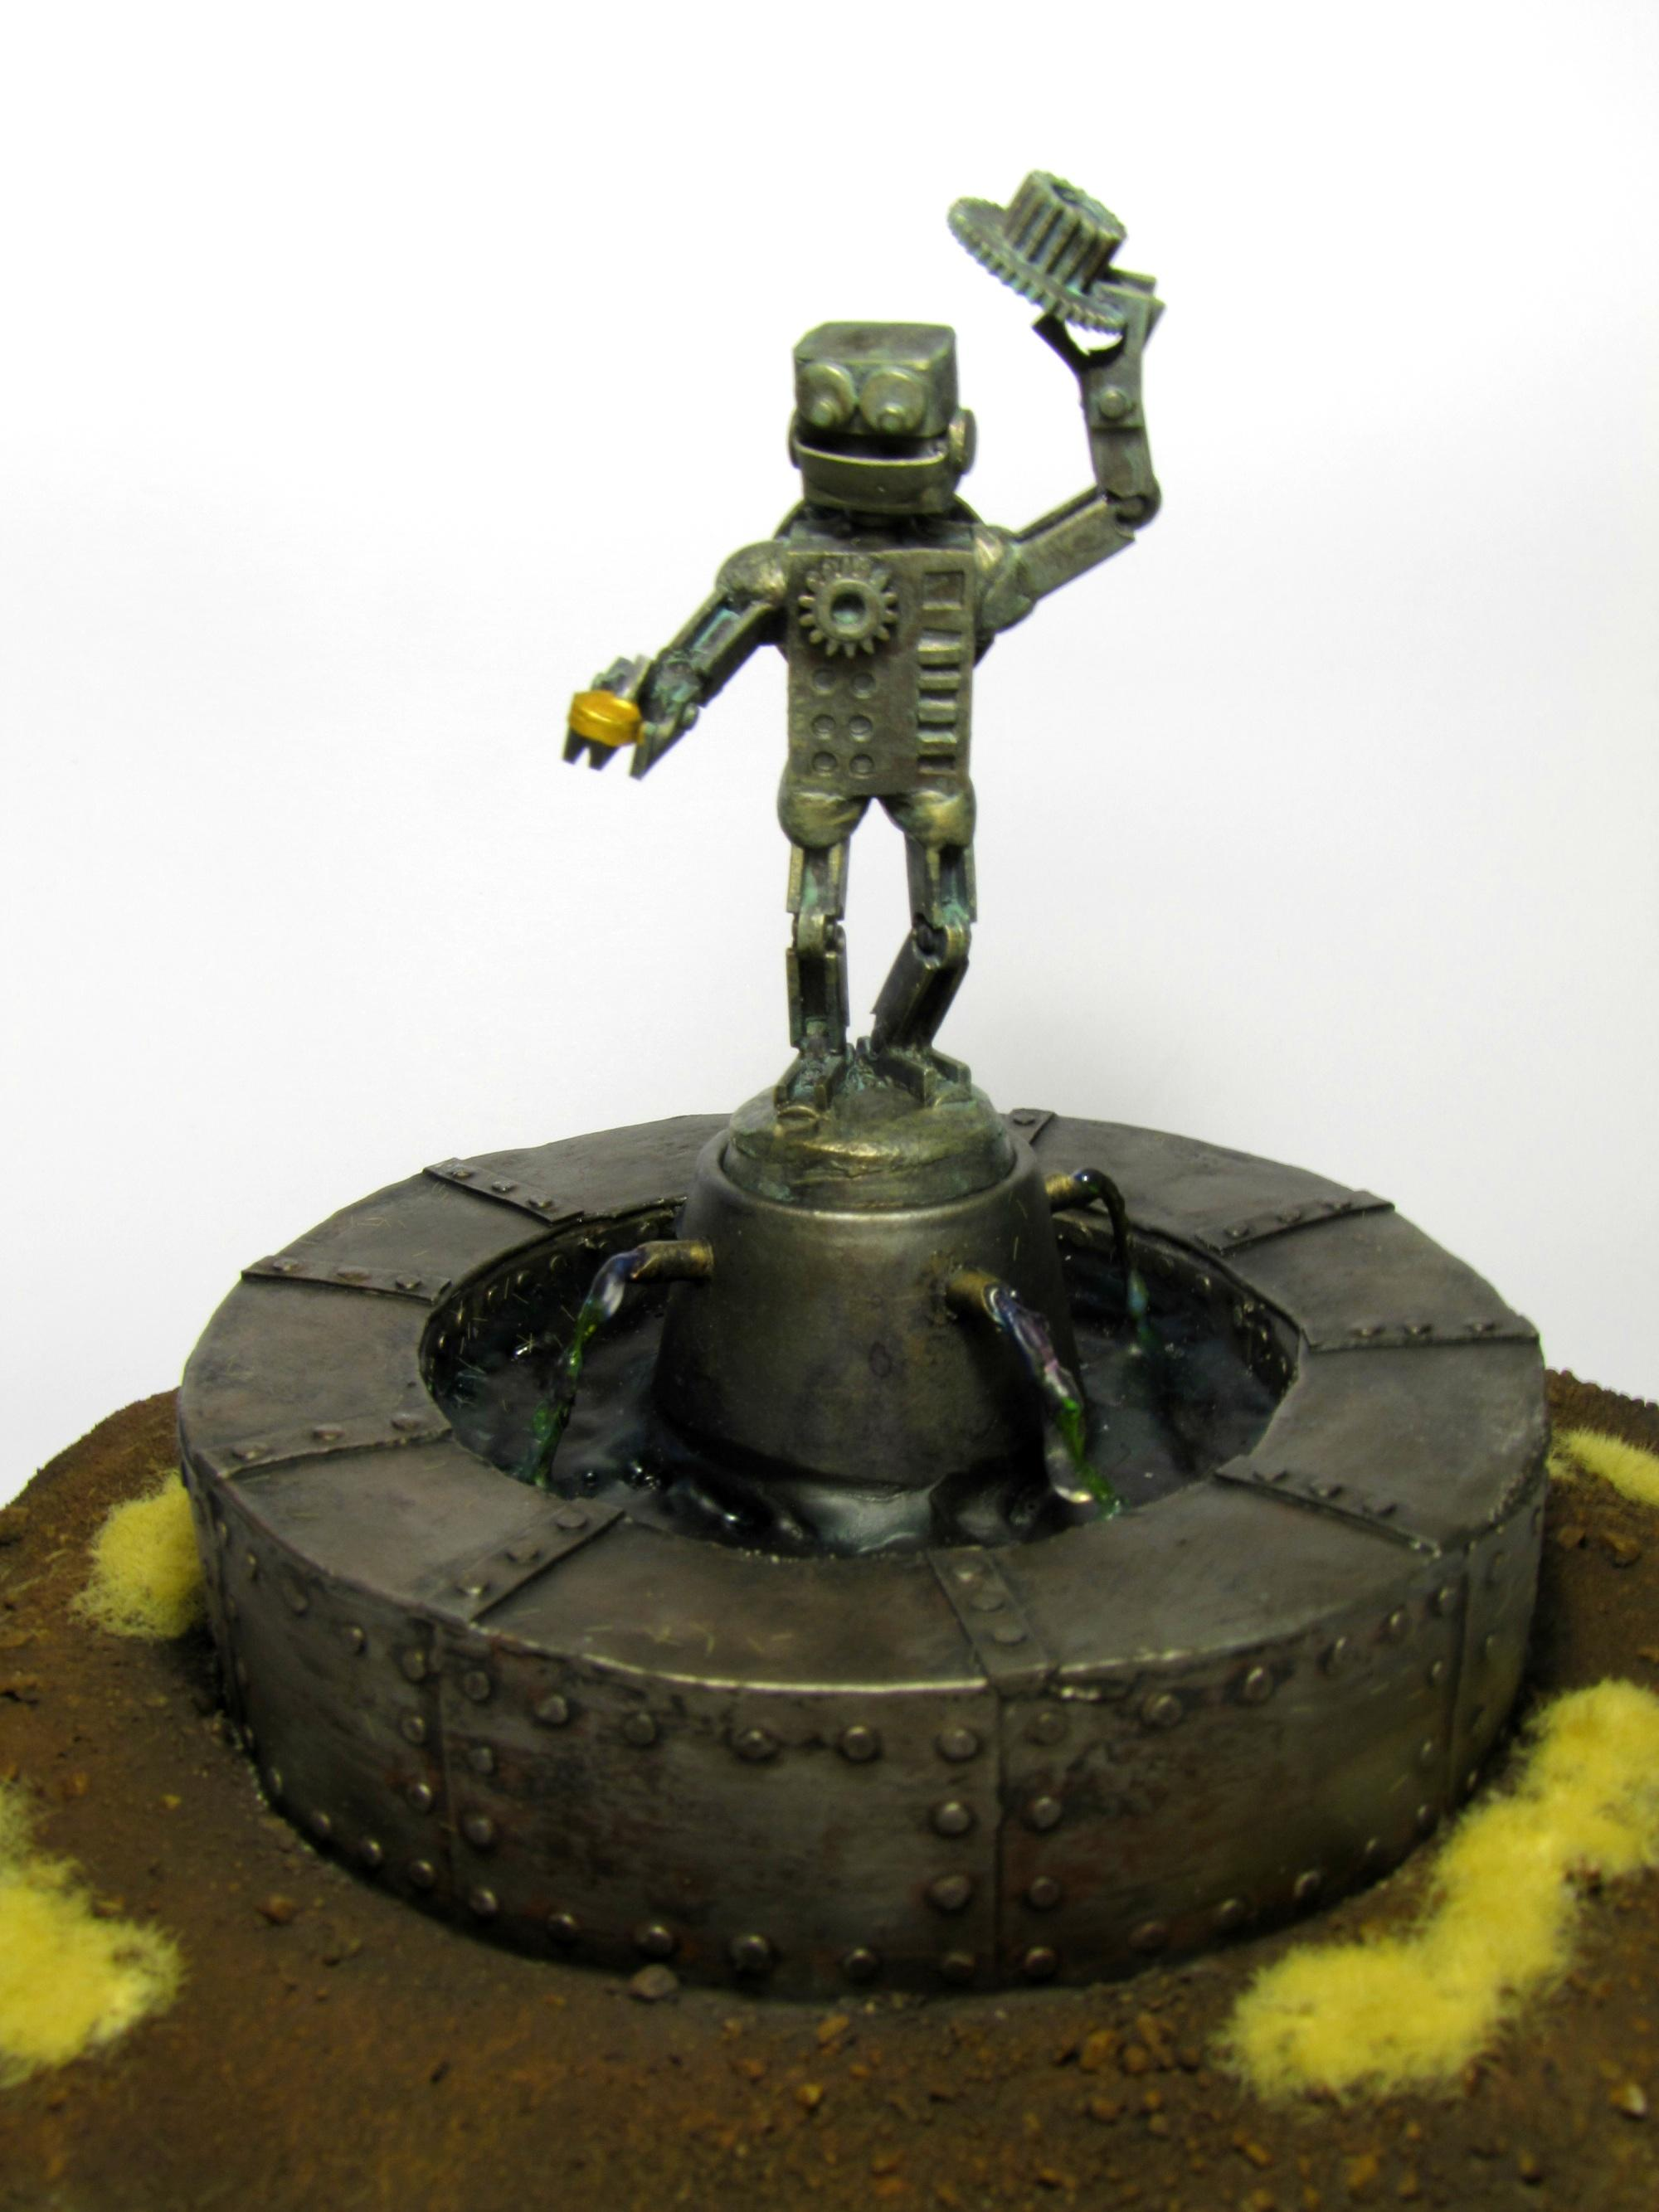 Cog, Gear, Hat, Metal, Prize, Robot, Steampunk, Terrain, Terrain Competition, Well